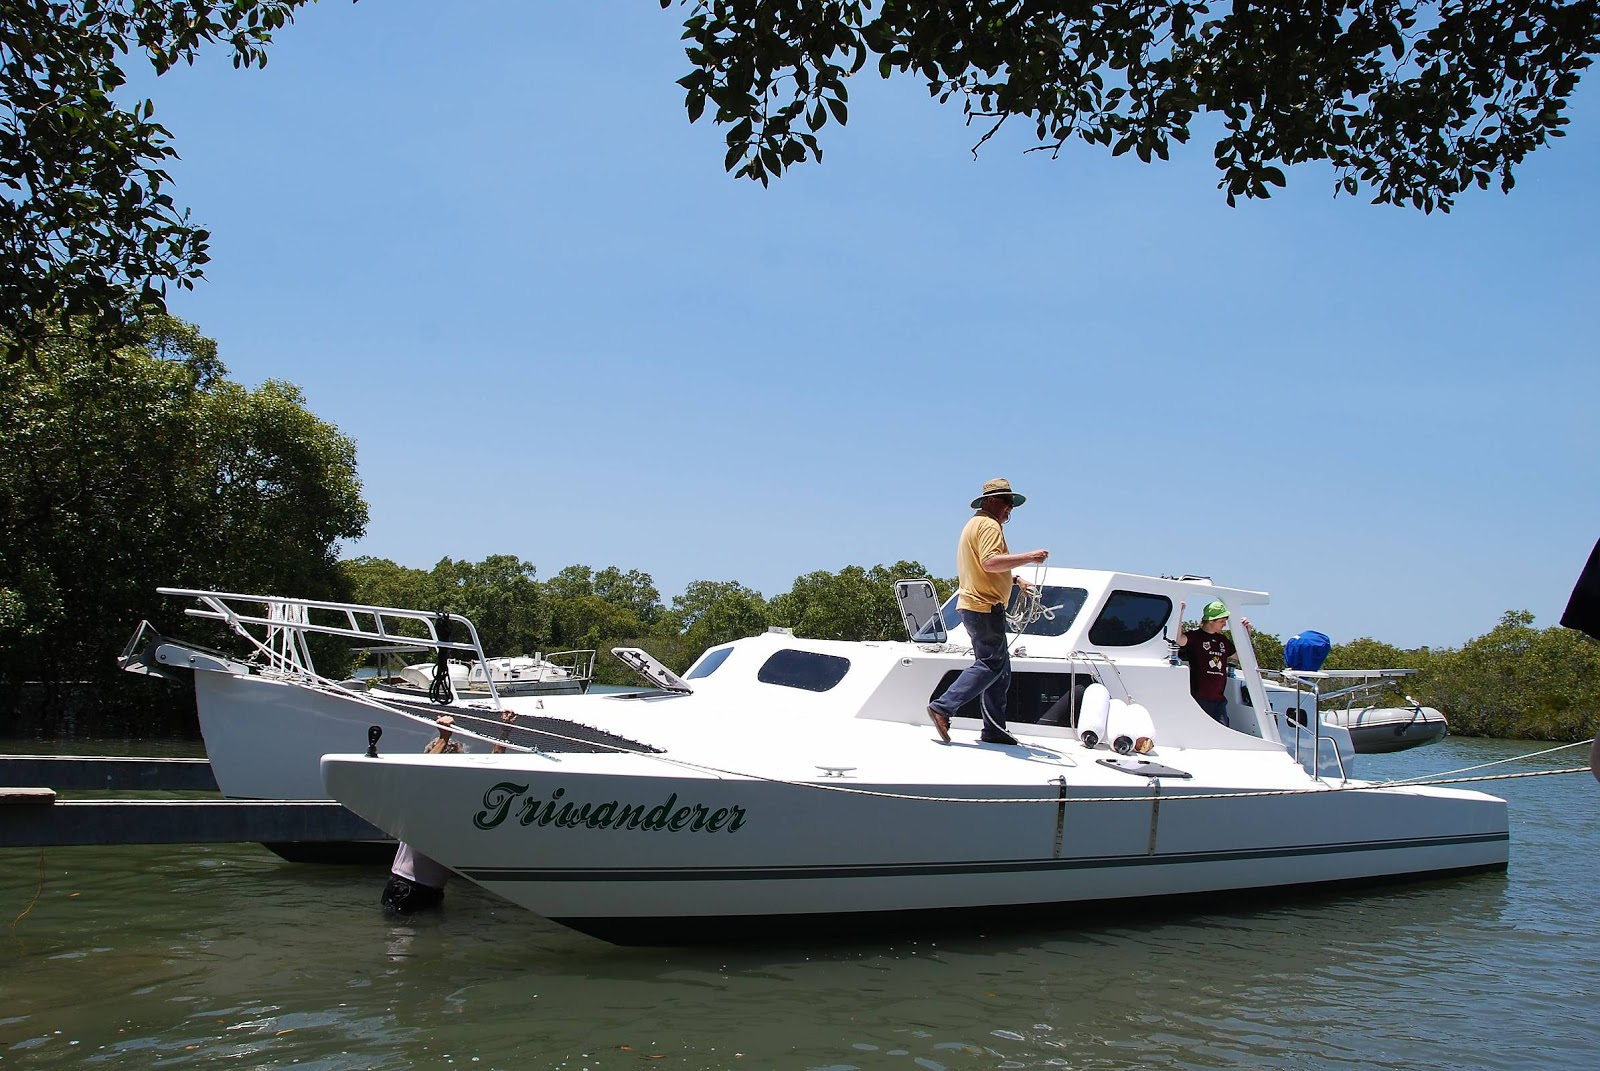 Trimaran Projects and Multihull News: Triwanderer's, Hedley